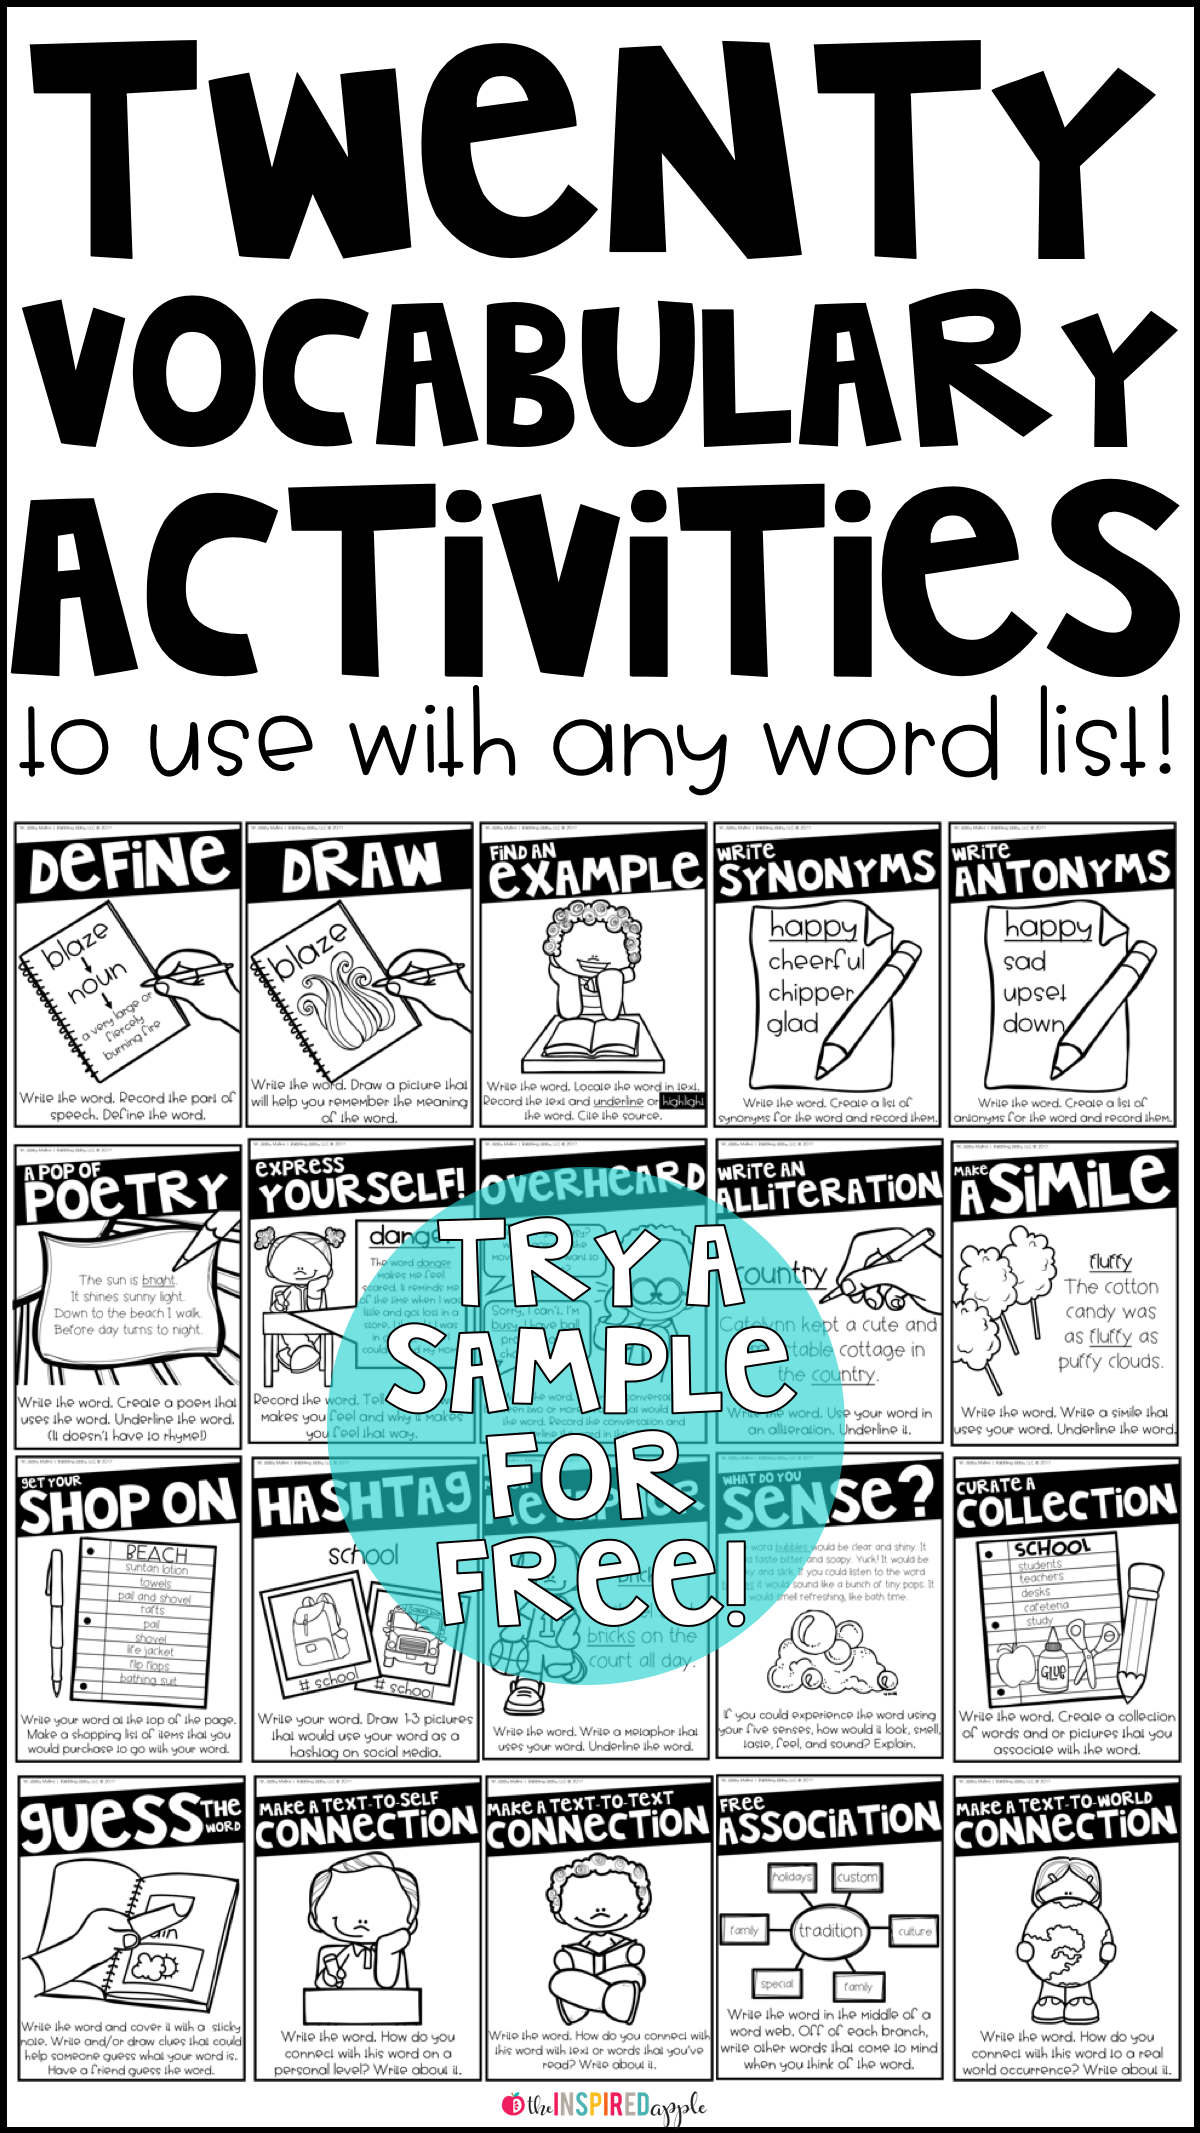 Vocabulary activities for any word vocabulary words preschool